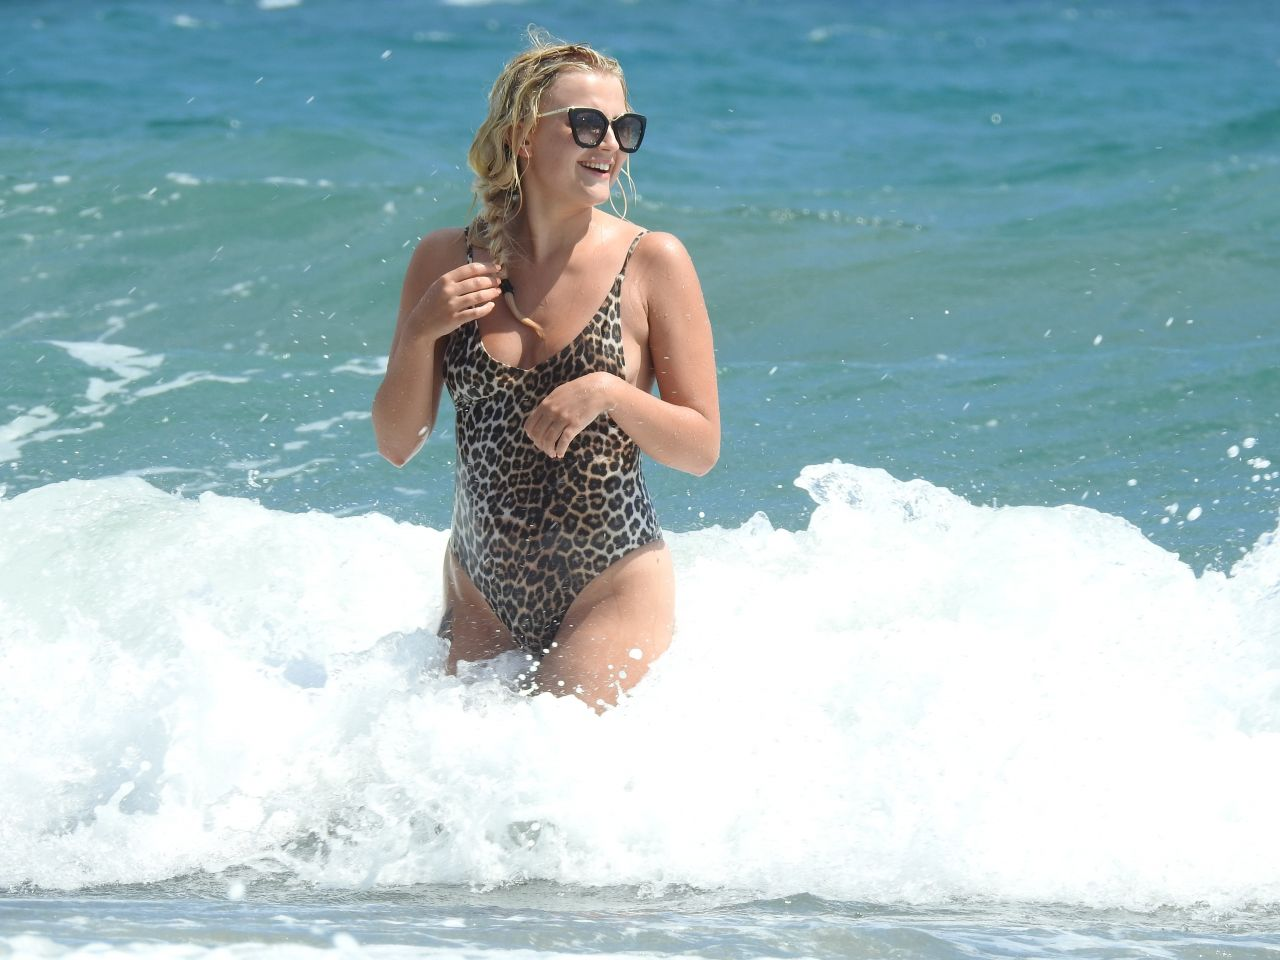 Bikini Lucy Fallon nudes (13 photo), Tits, Paparazzi, Feet, swimsuit 2019